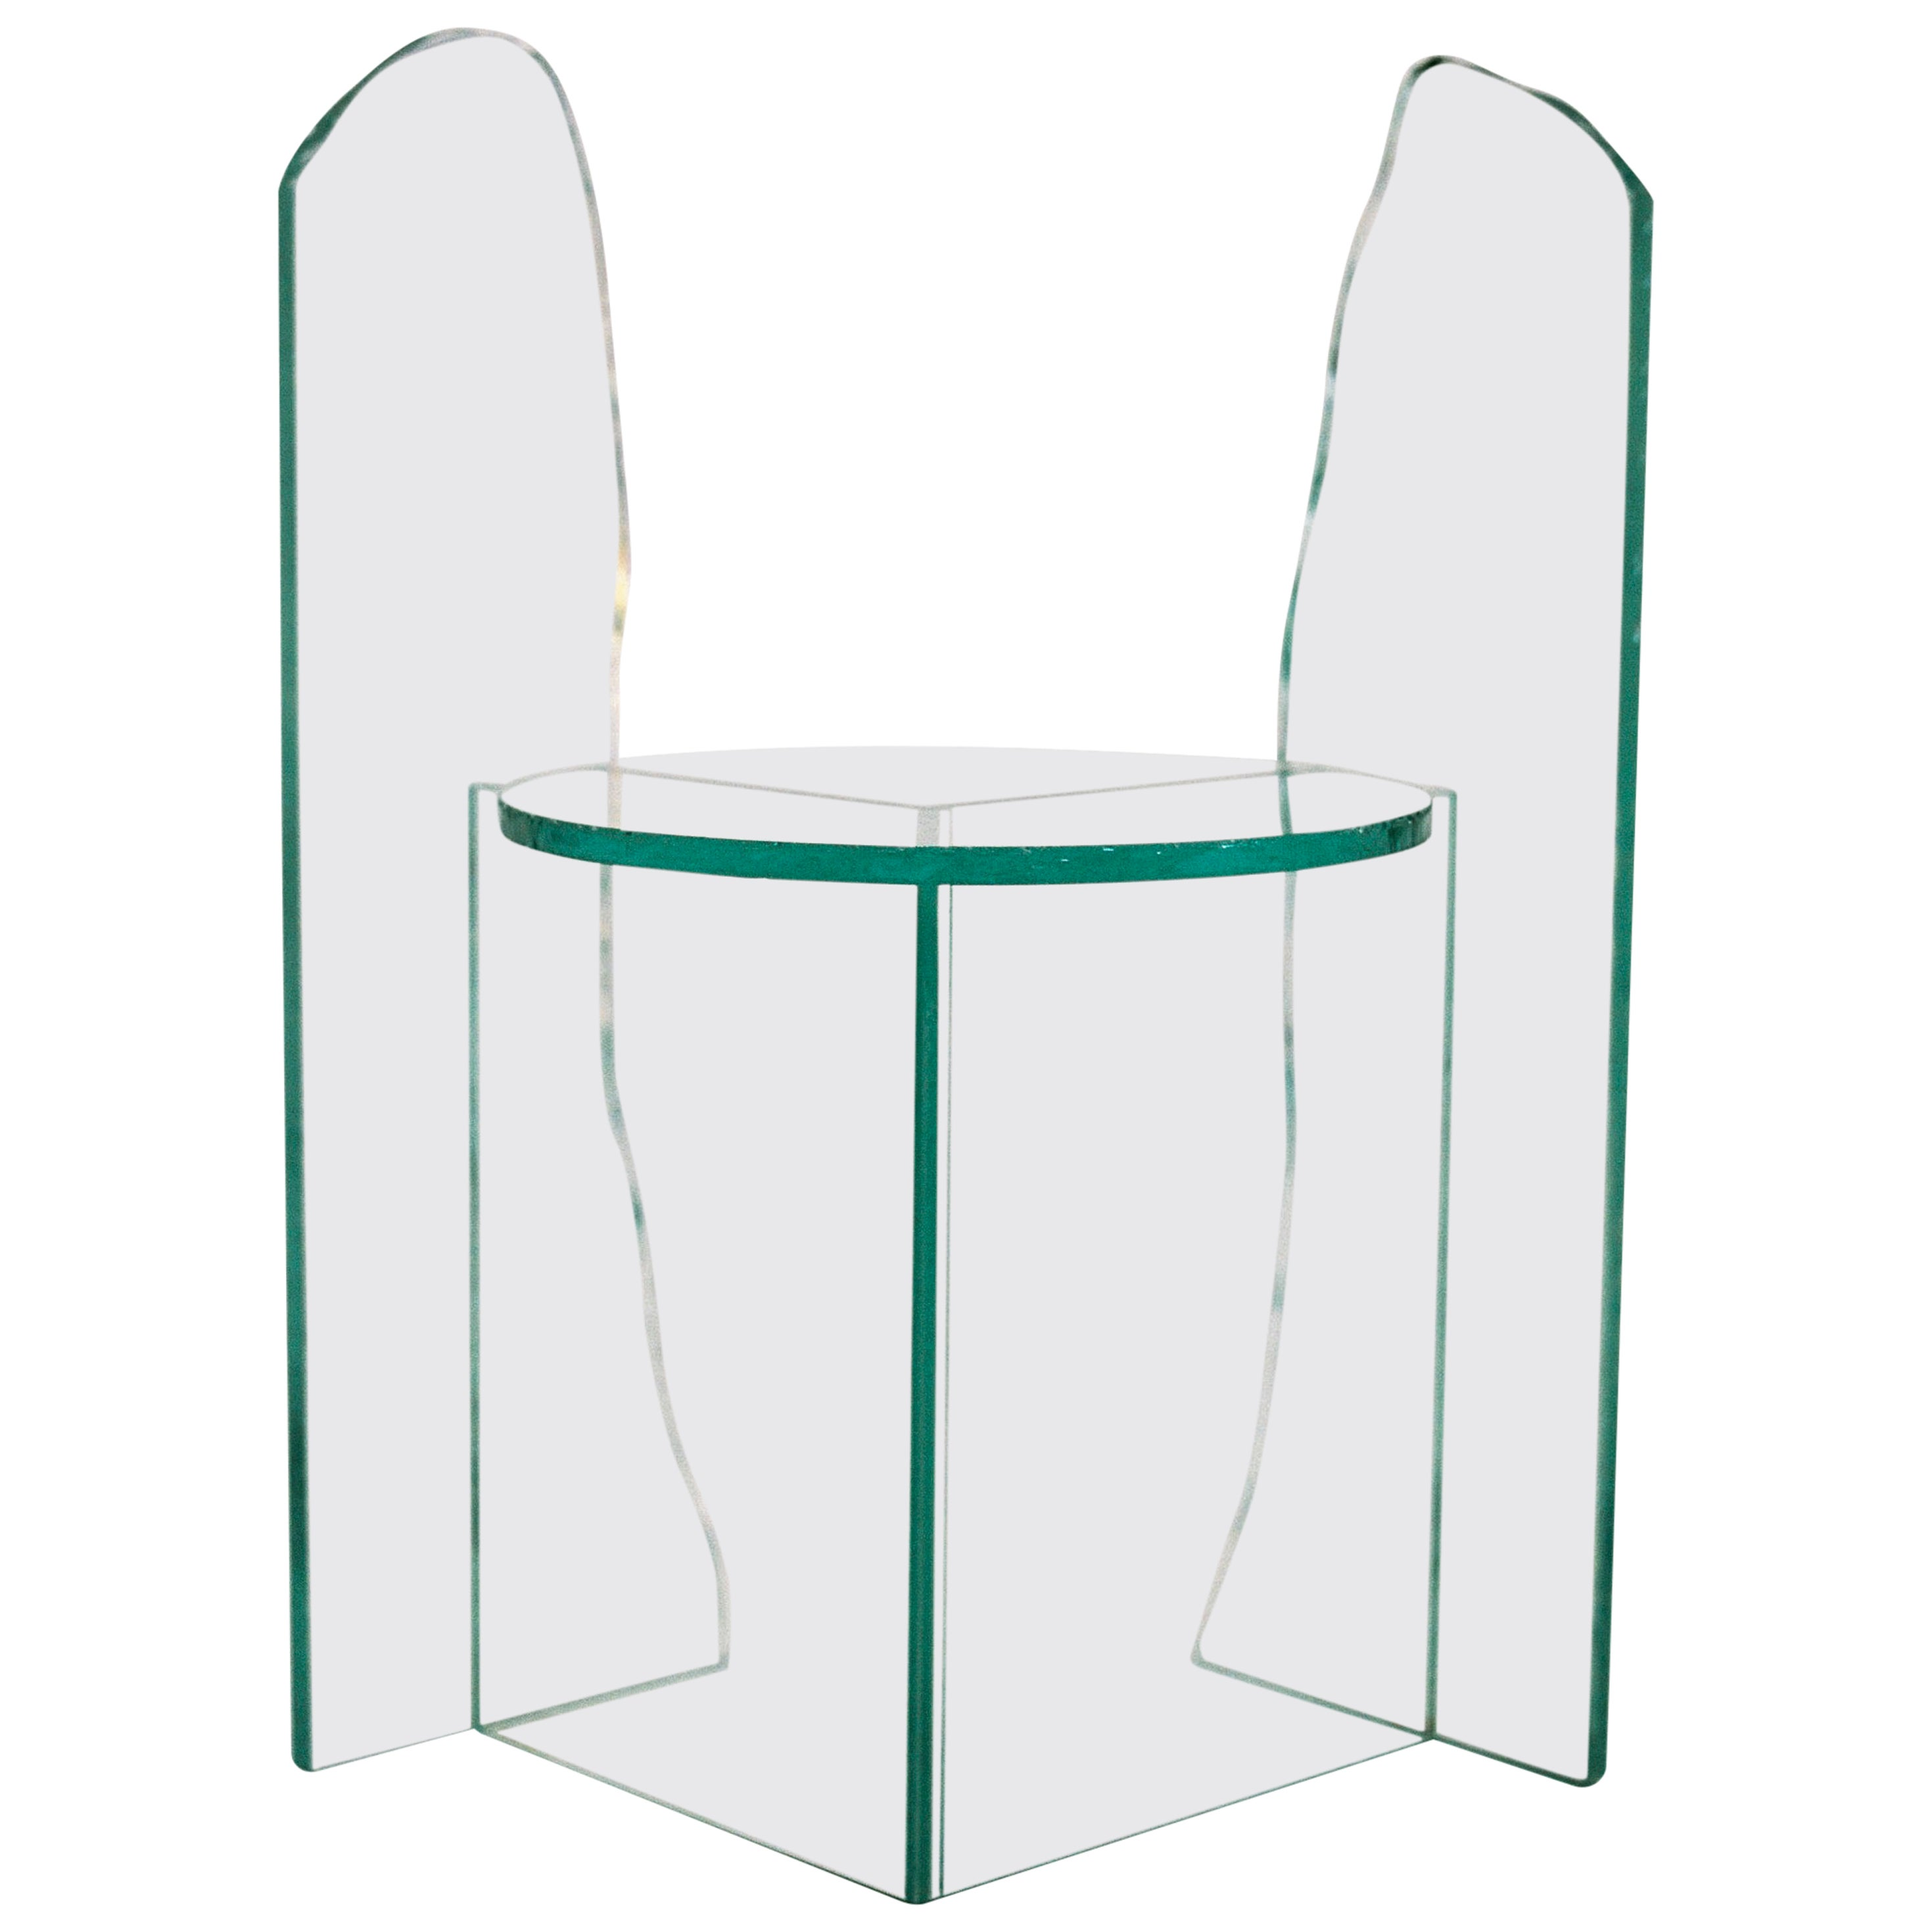 Glass Chair 1 by Guillermo Santoma